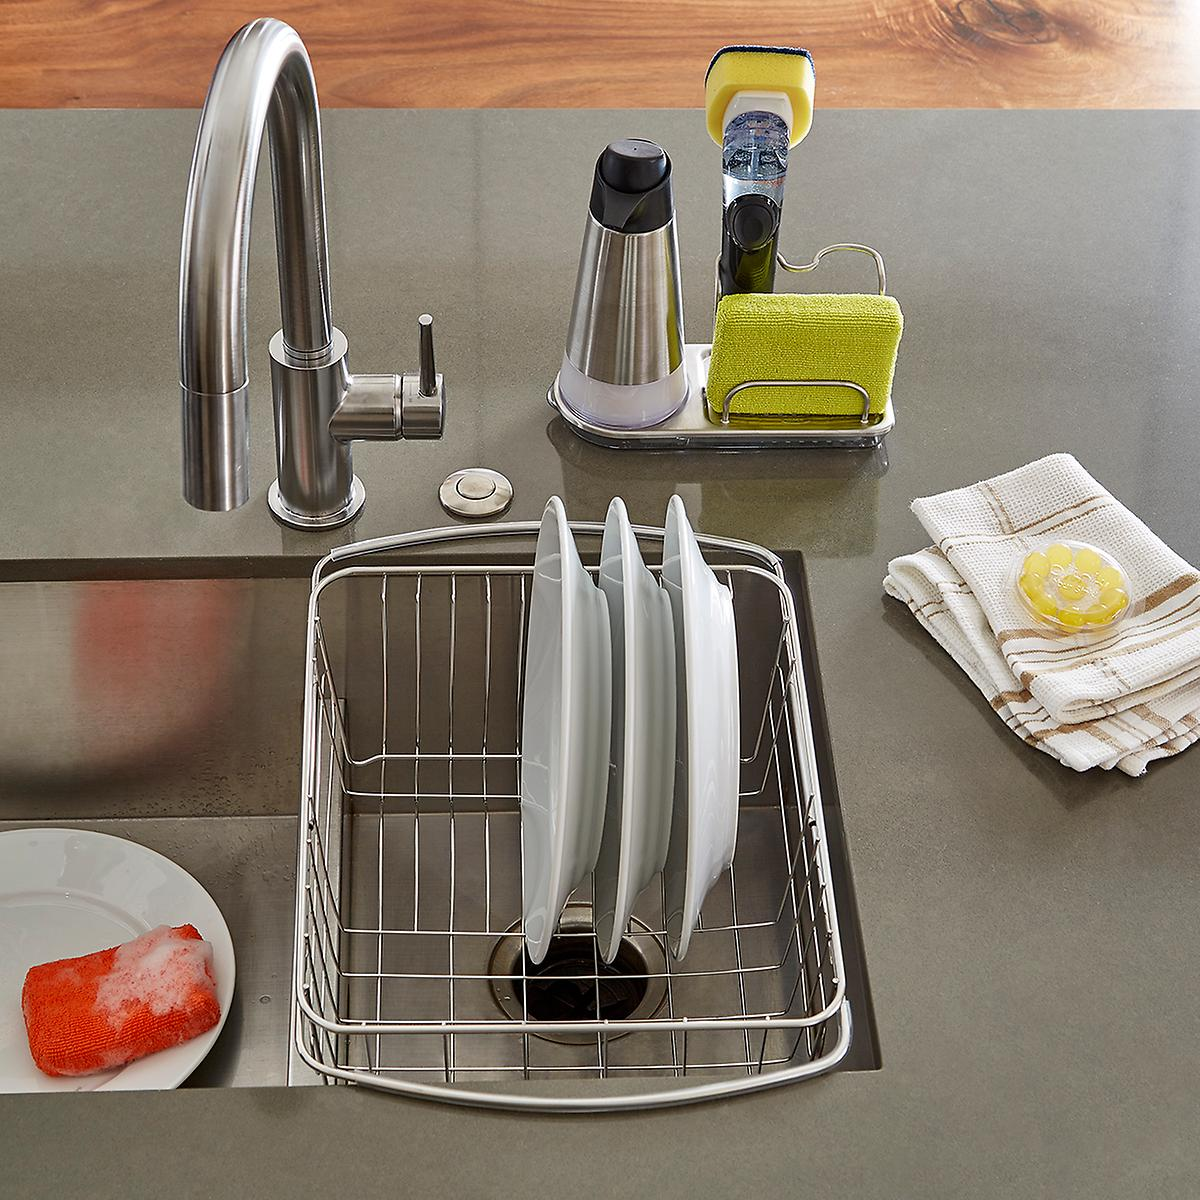 kitchen sink starter kit | the container store